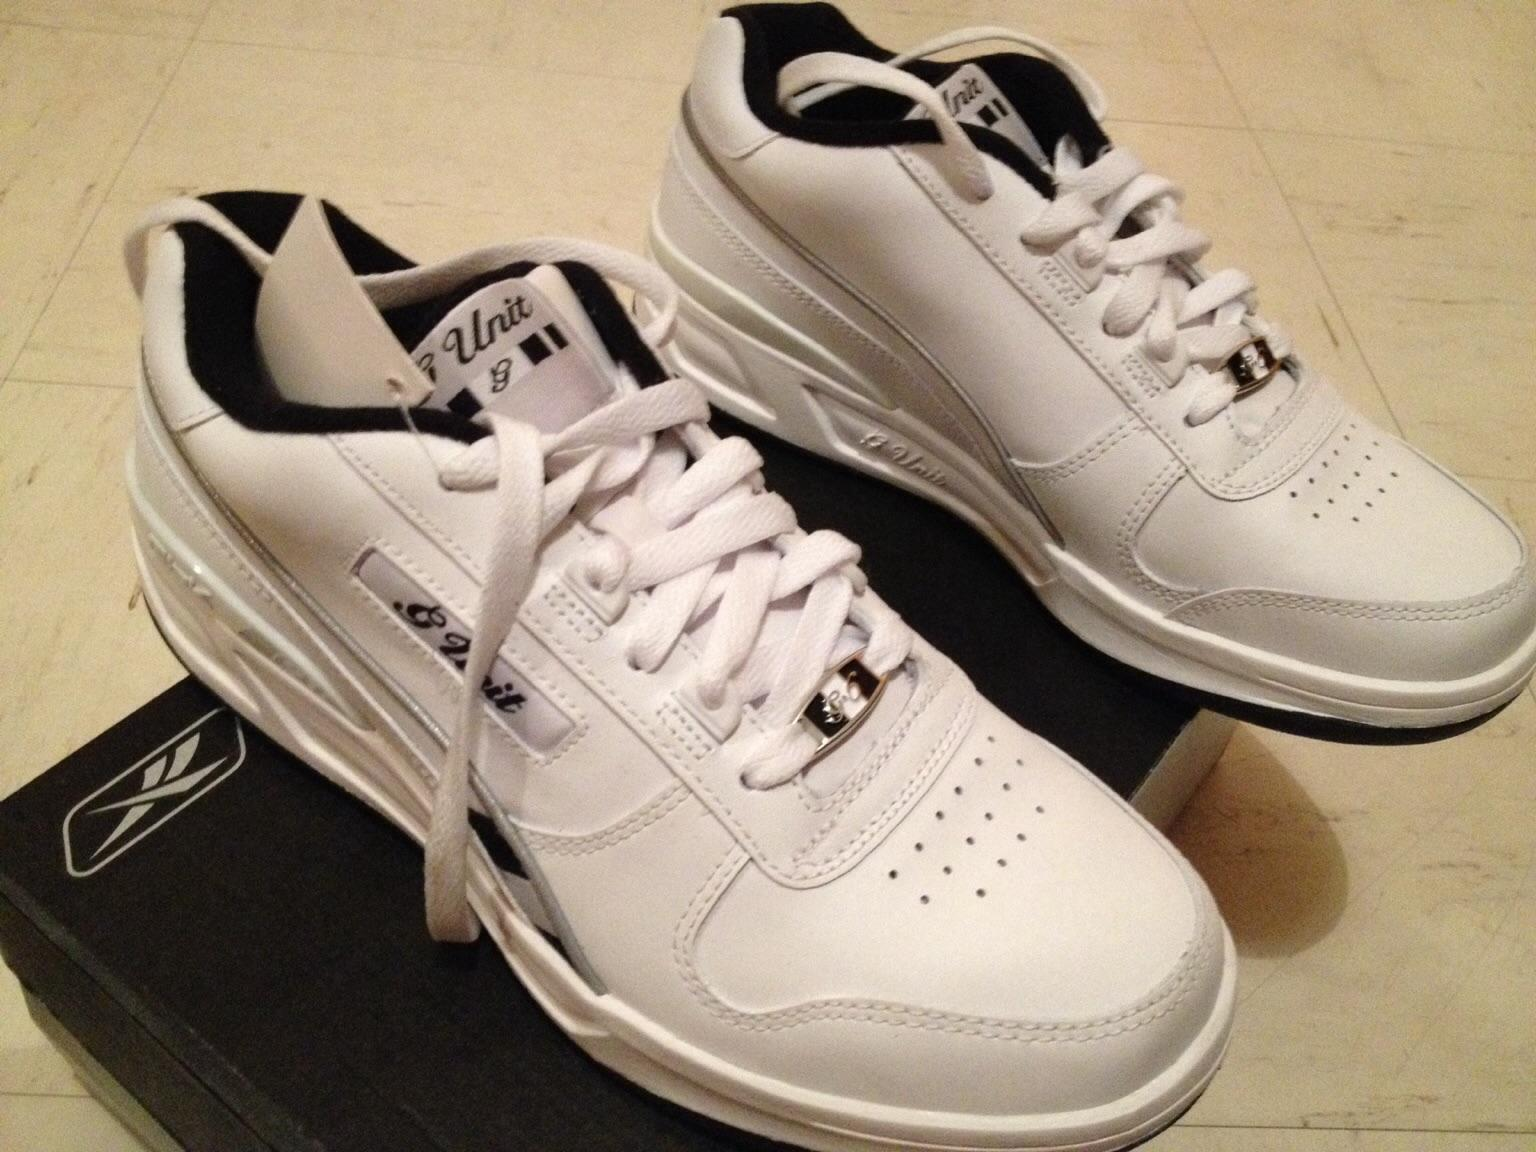 Reebok Sneaker G-Unit Schuhe Gr. 39 in 1010 Wien for €25.00 for sale -  Shpock 1a70a7fb0